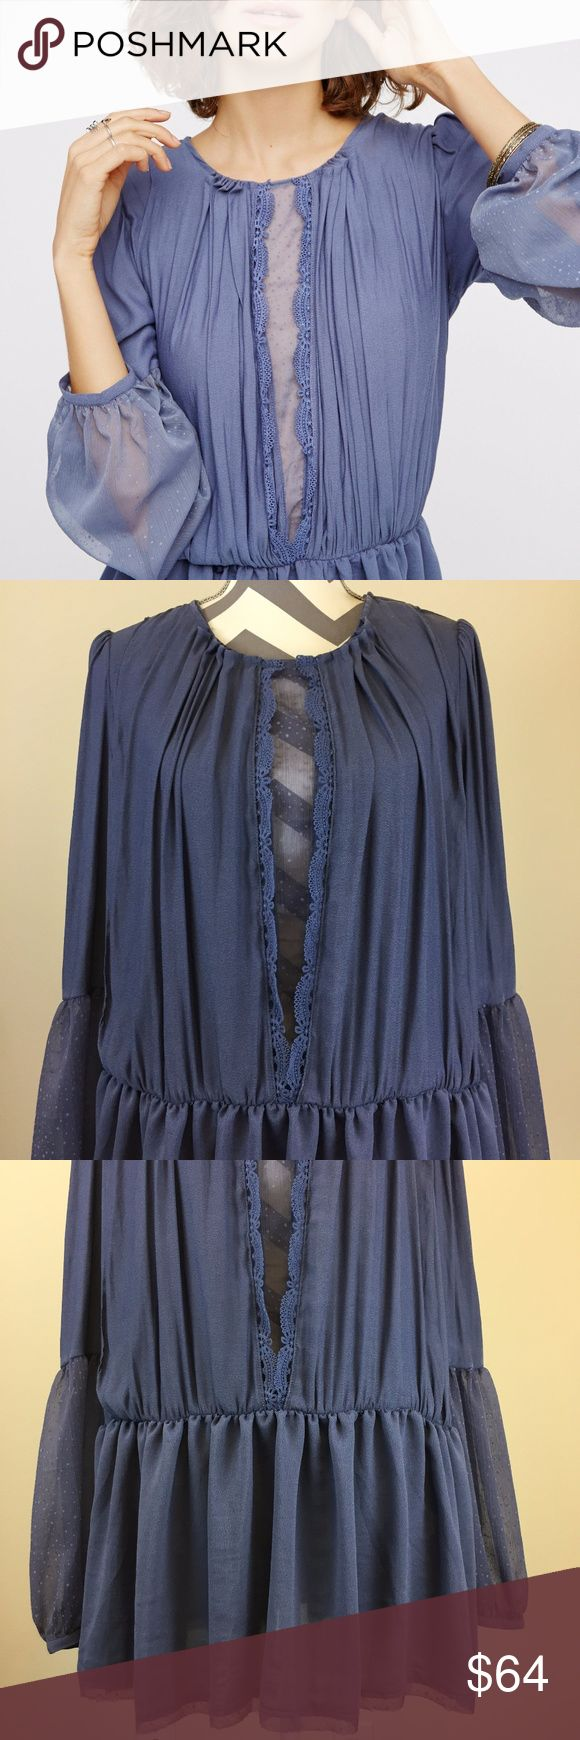 NEW Free People Blue Lace Inset Top w/Puff Sleeves Soft blue Free People top with pleated front, lace insets and open back. Pullover style with elastic waist. Fabric: 100% polyester Free People Tops